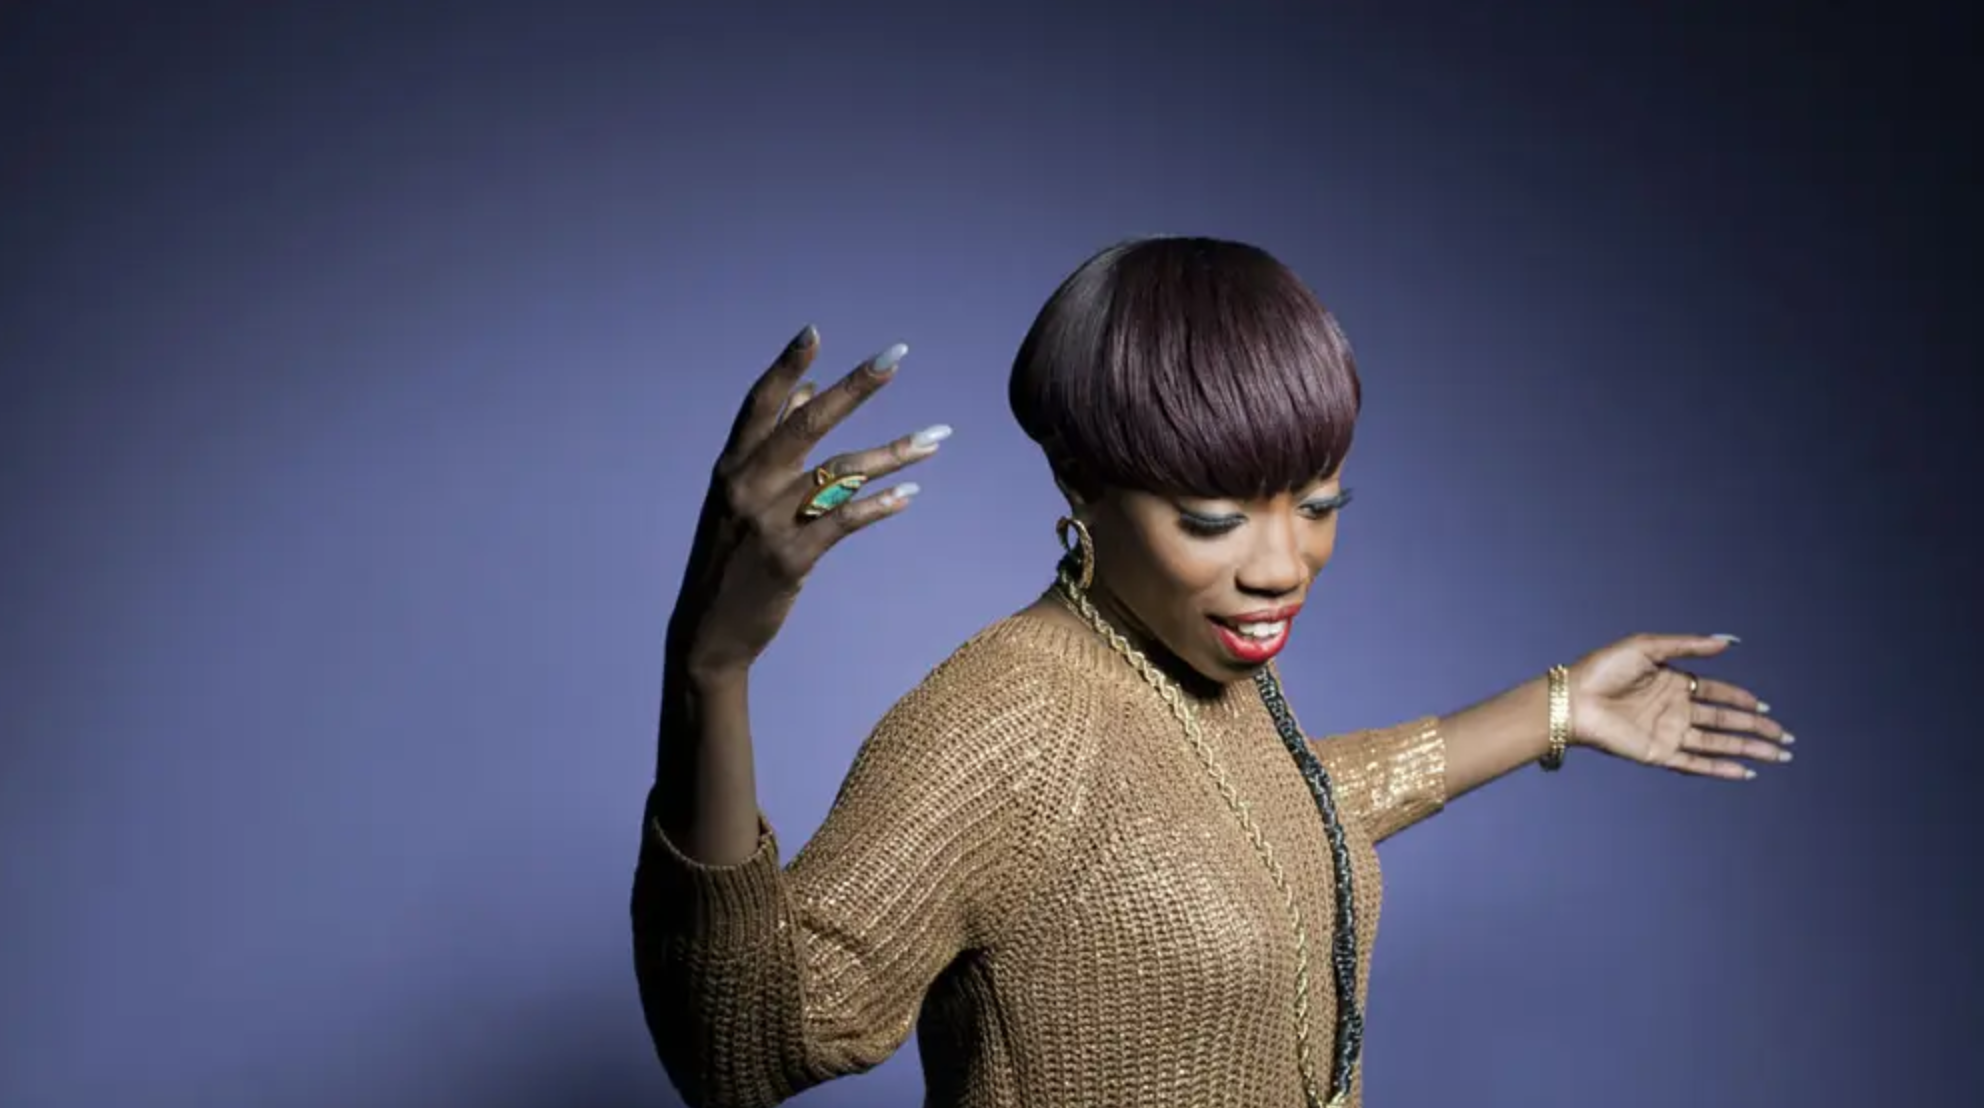 Best Estelle Songs of All Time – Top 10 Tracks | Discotech